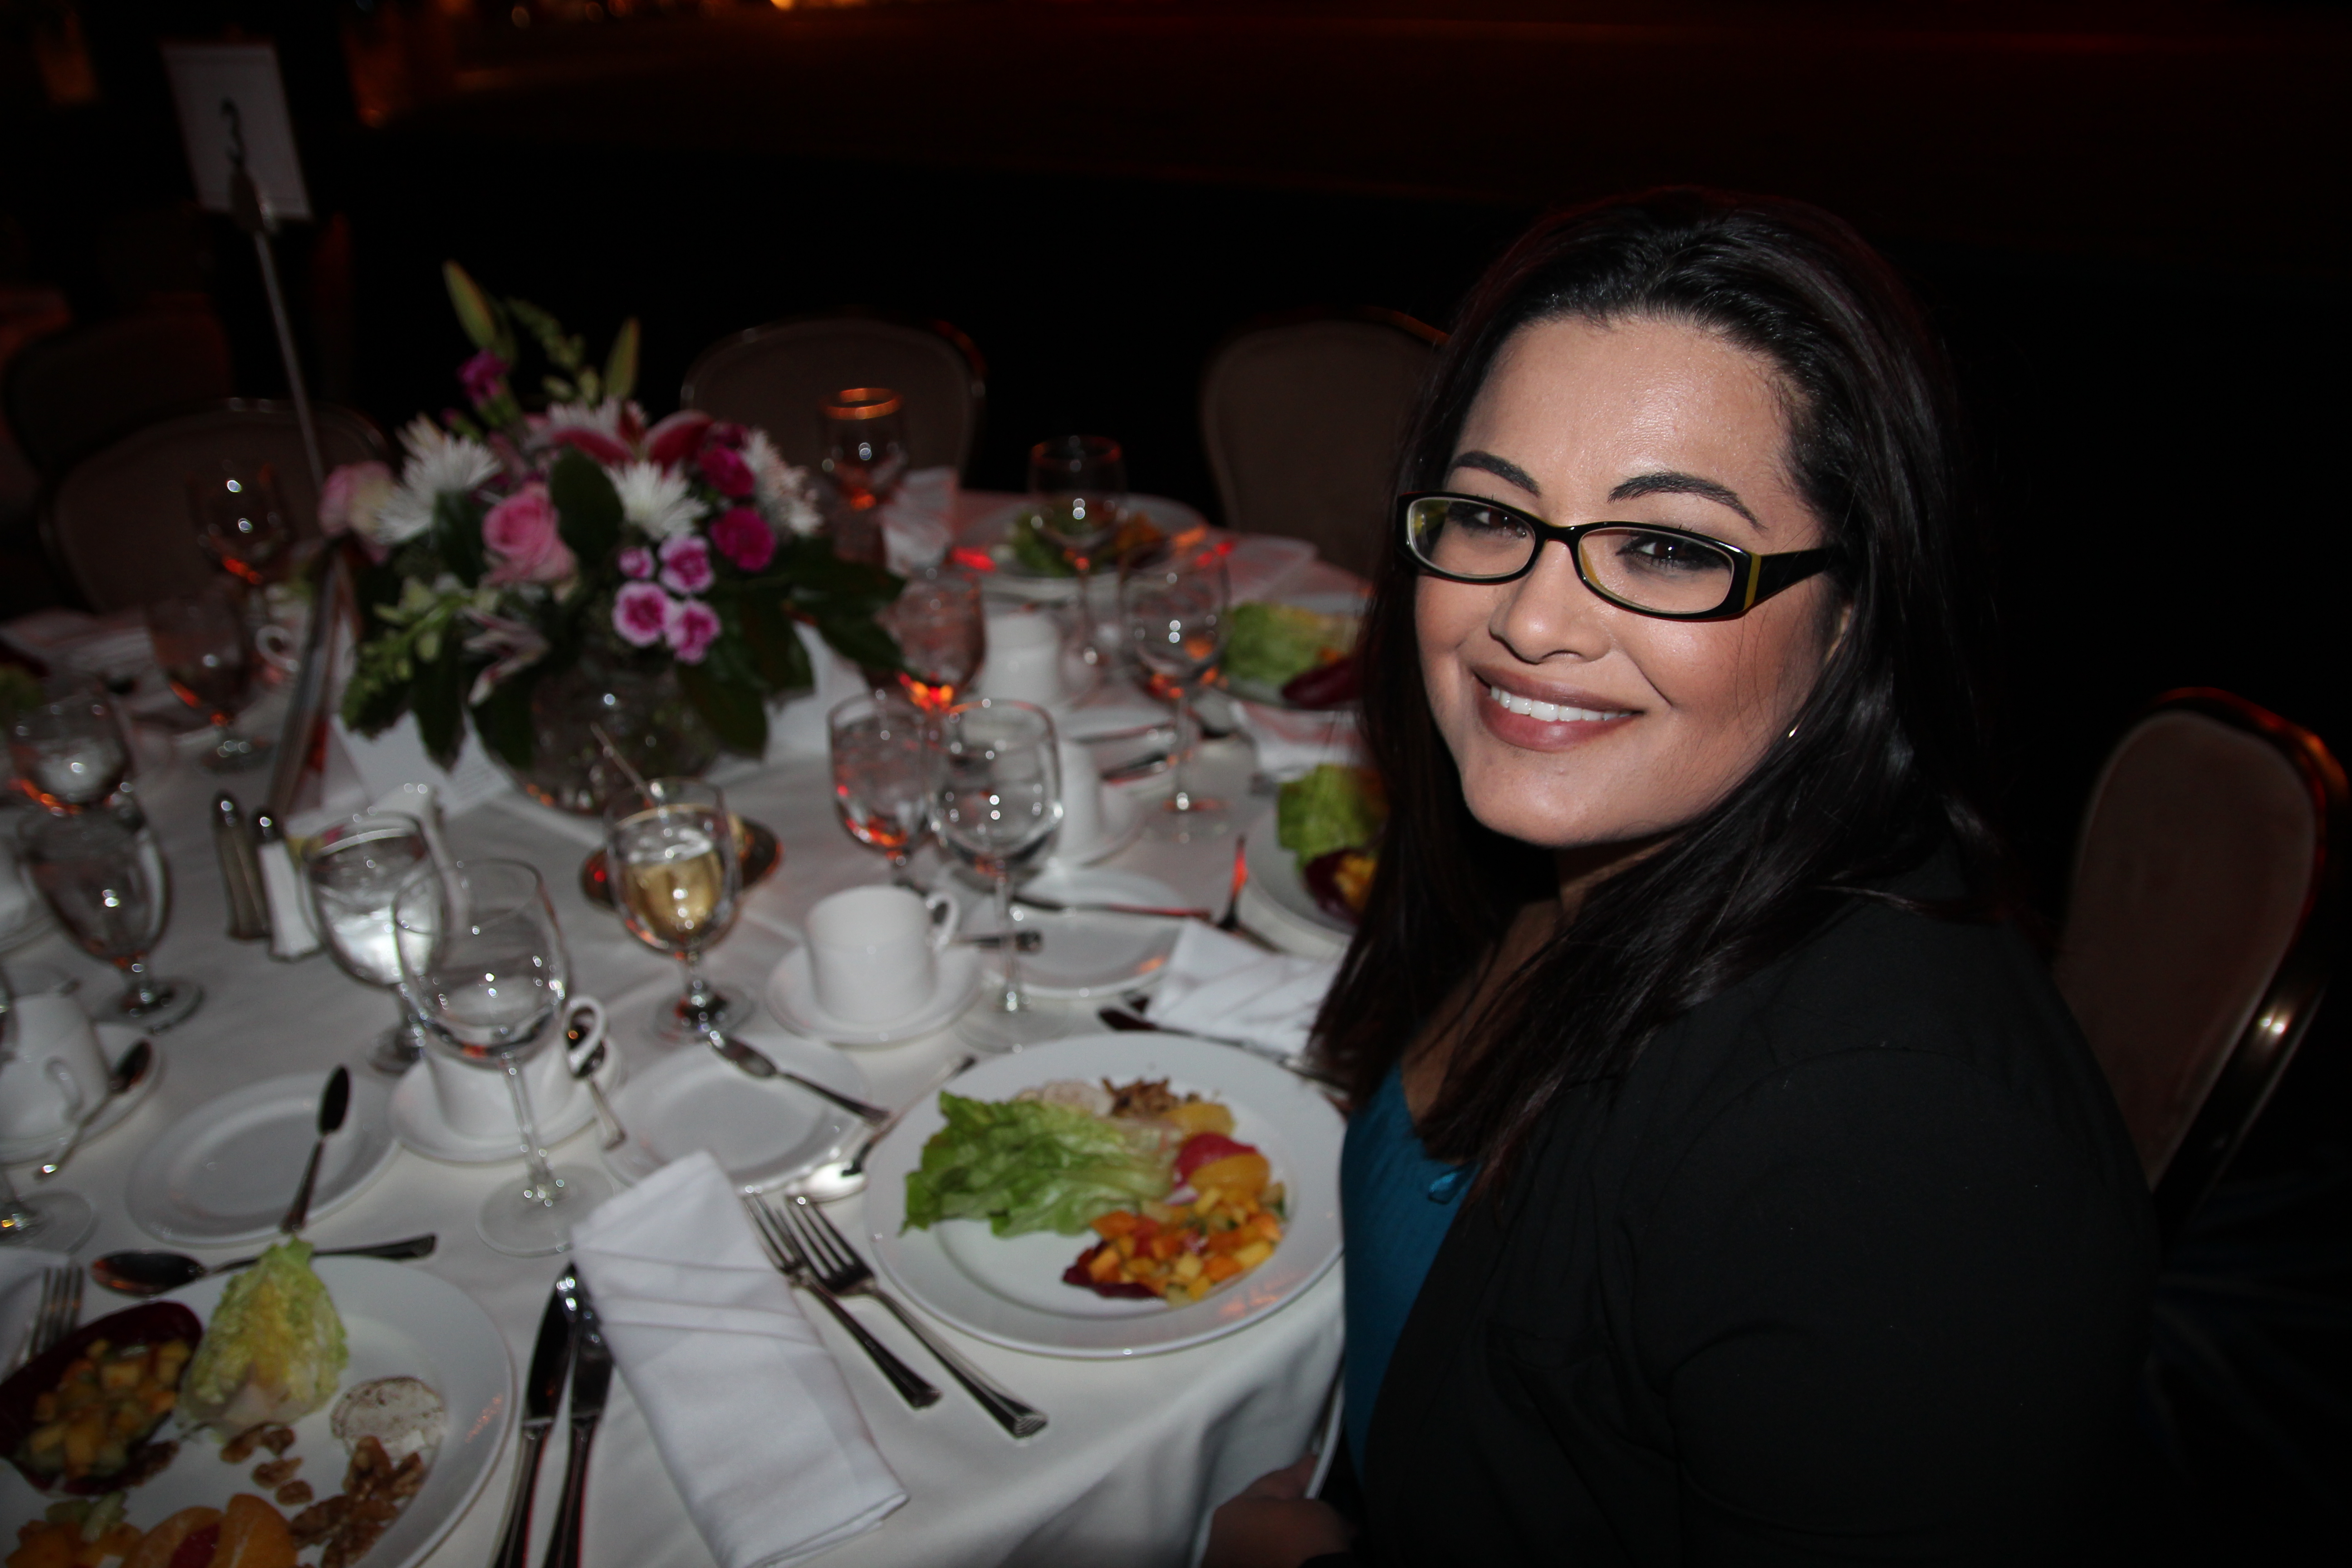 Krista from Elite TV News at LAFLA Awards Dinner.